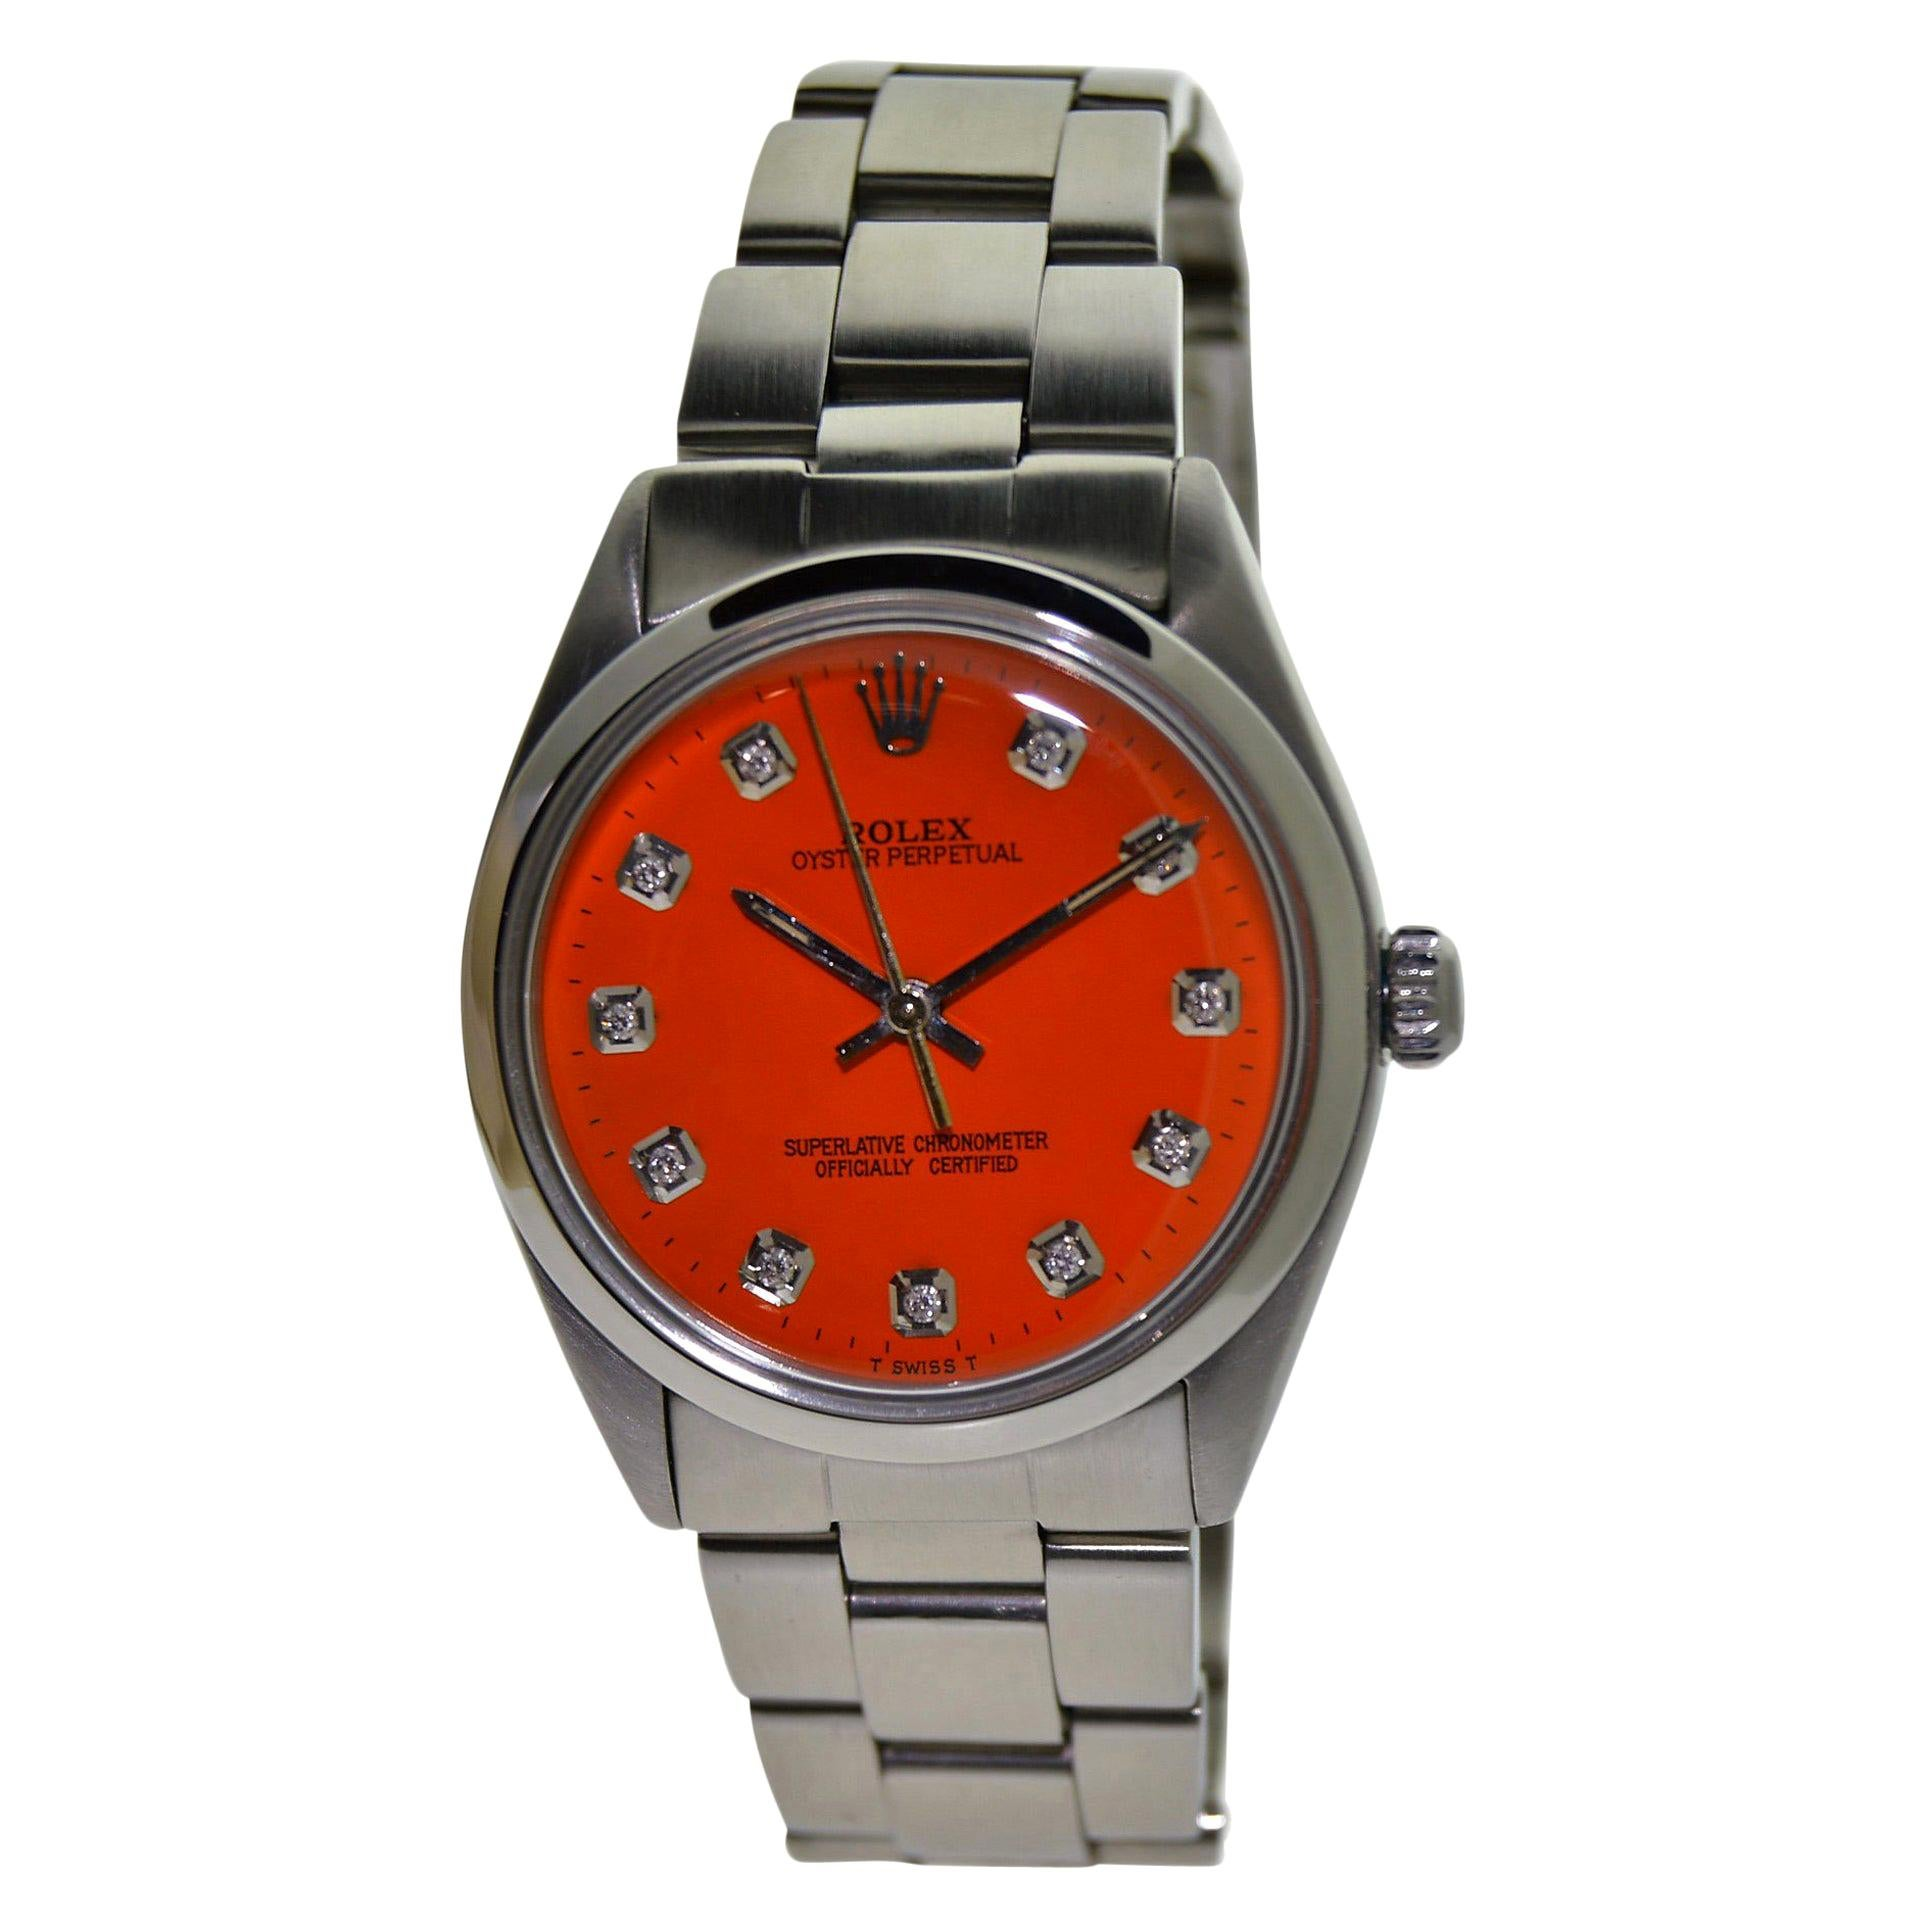 Rolex Stainless Steel Oyster Perpetual Custom Dial Perpetual Watch, circa 1970s